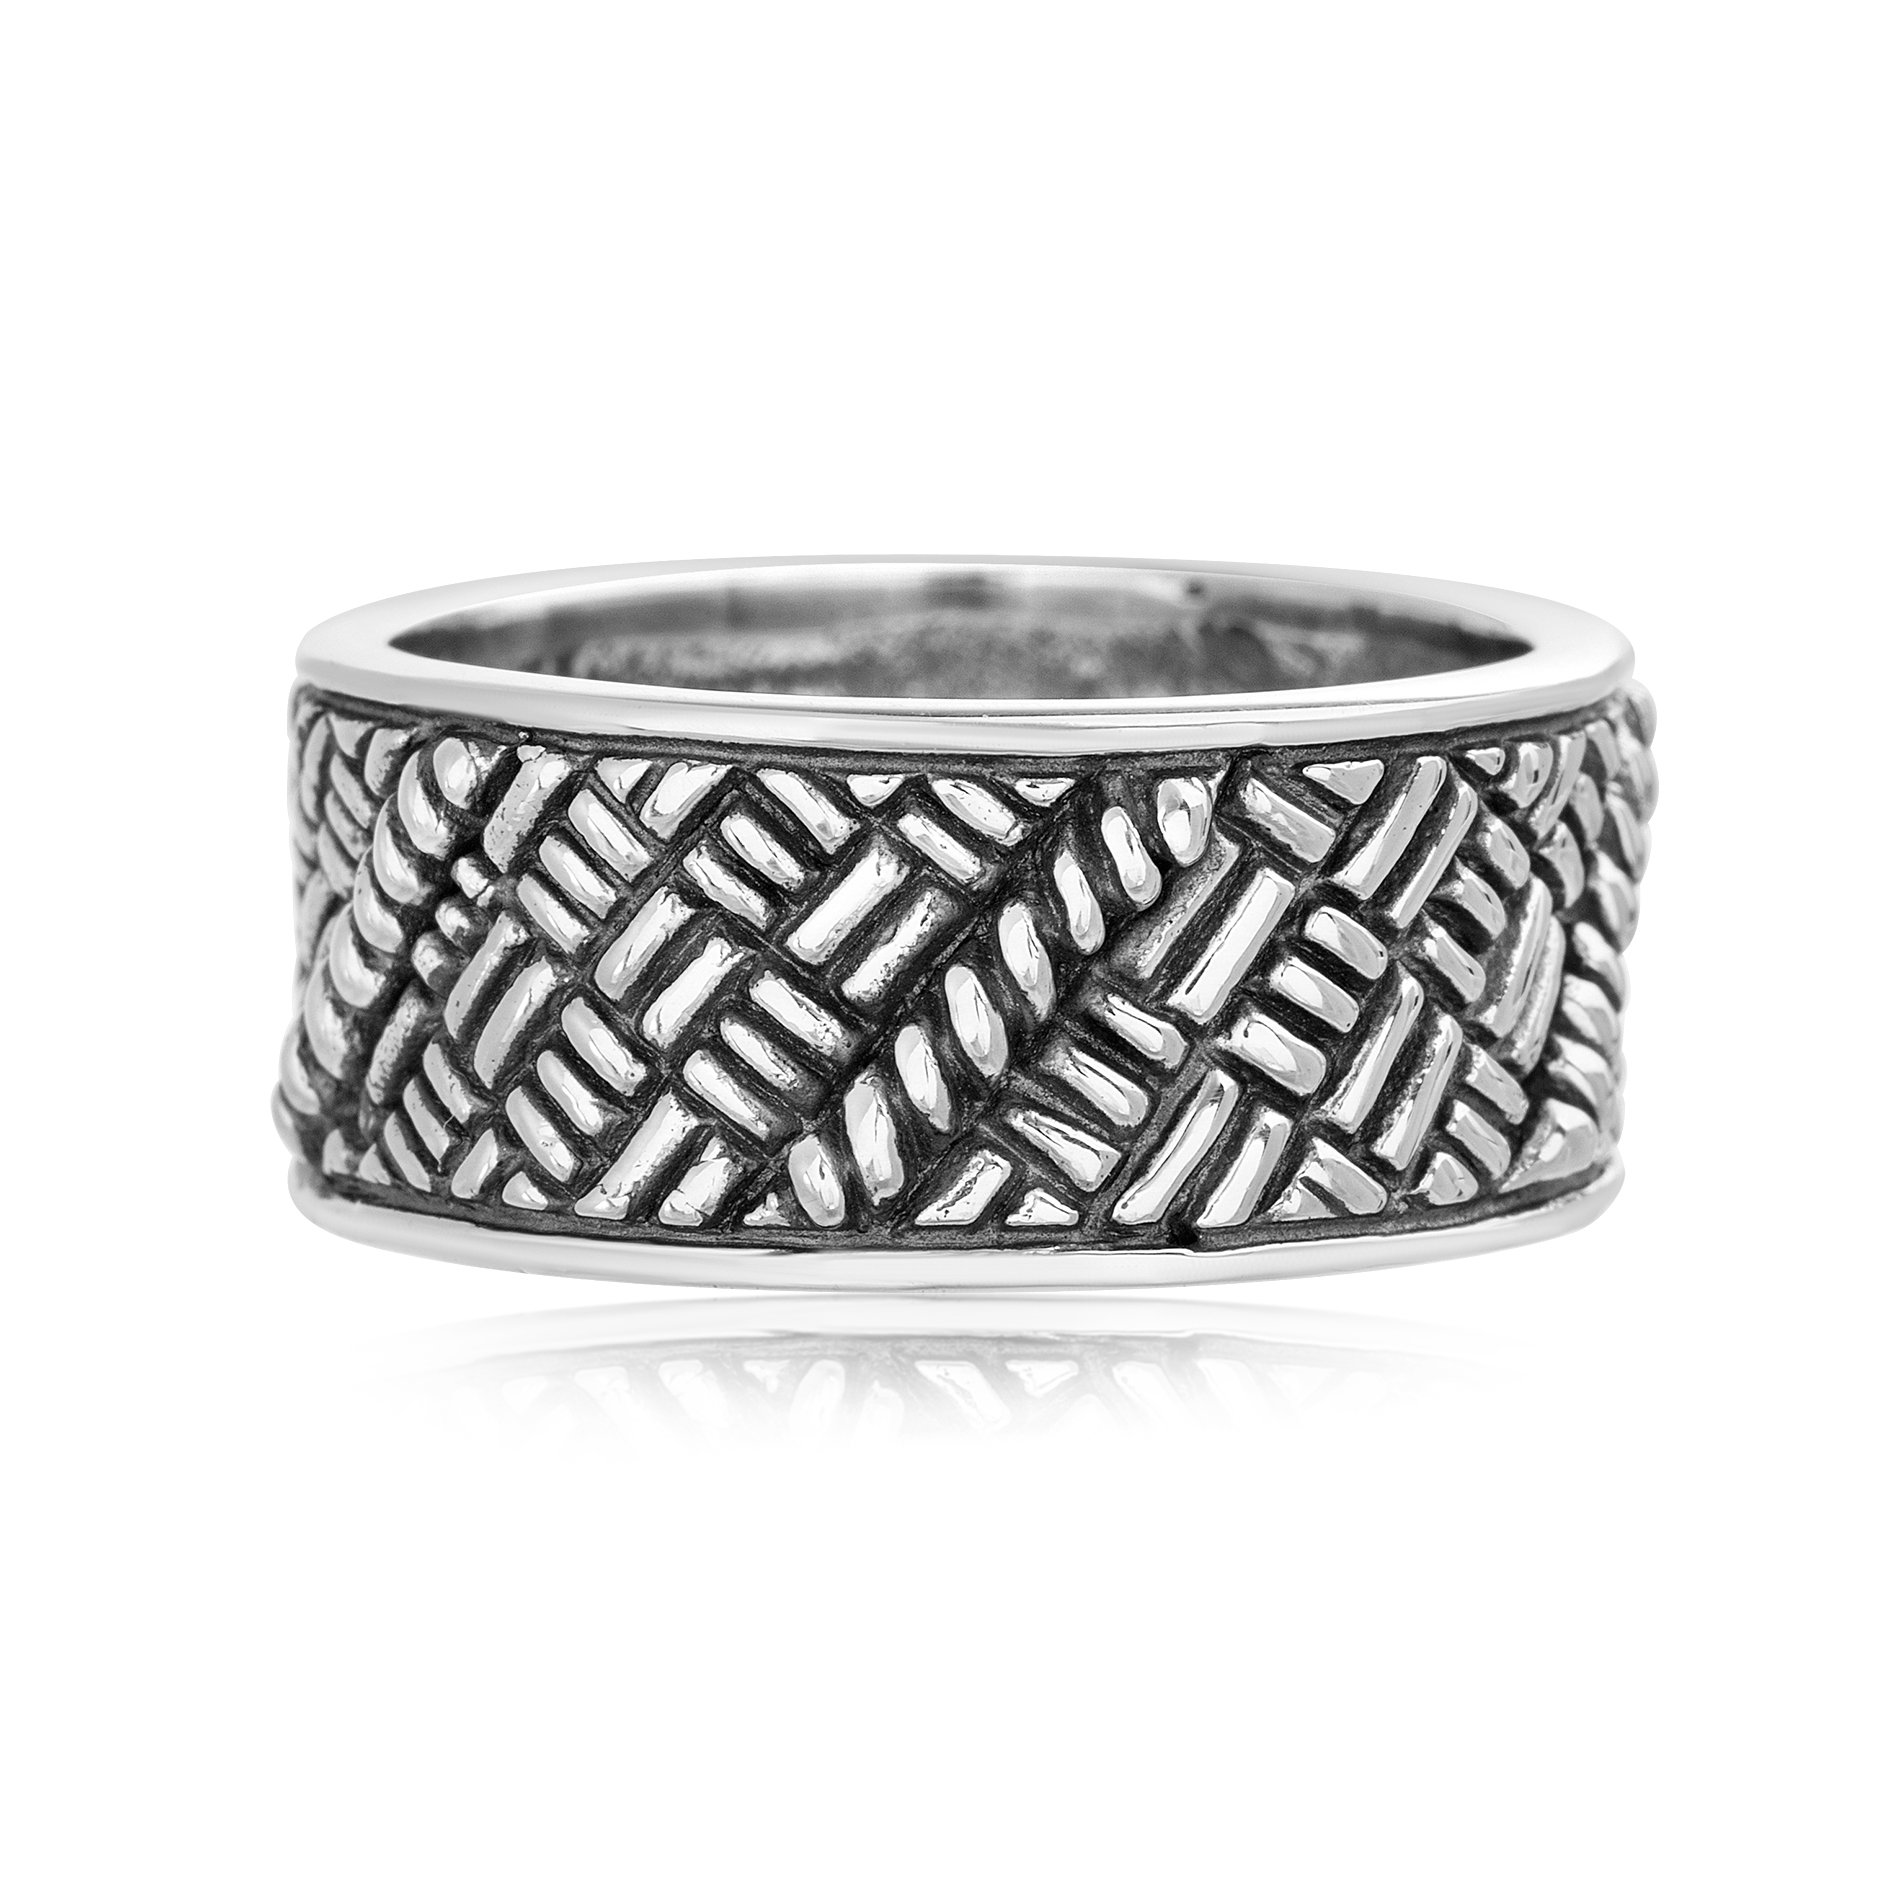 Willowbird Men's Basket Weave Design Band Ring in Oxidized Sterling Silver (Size 10)